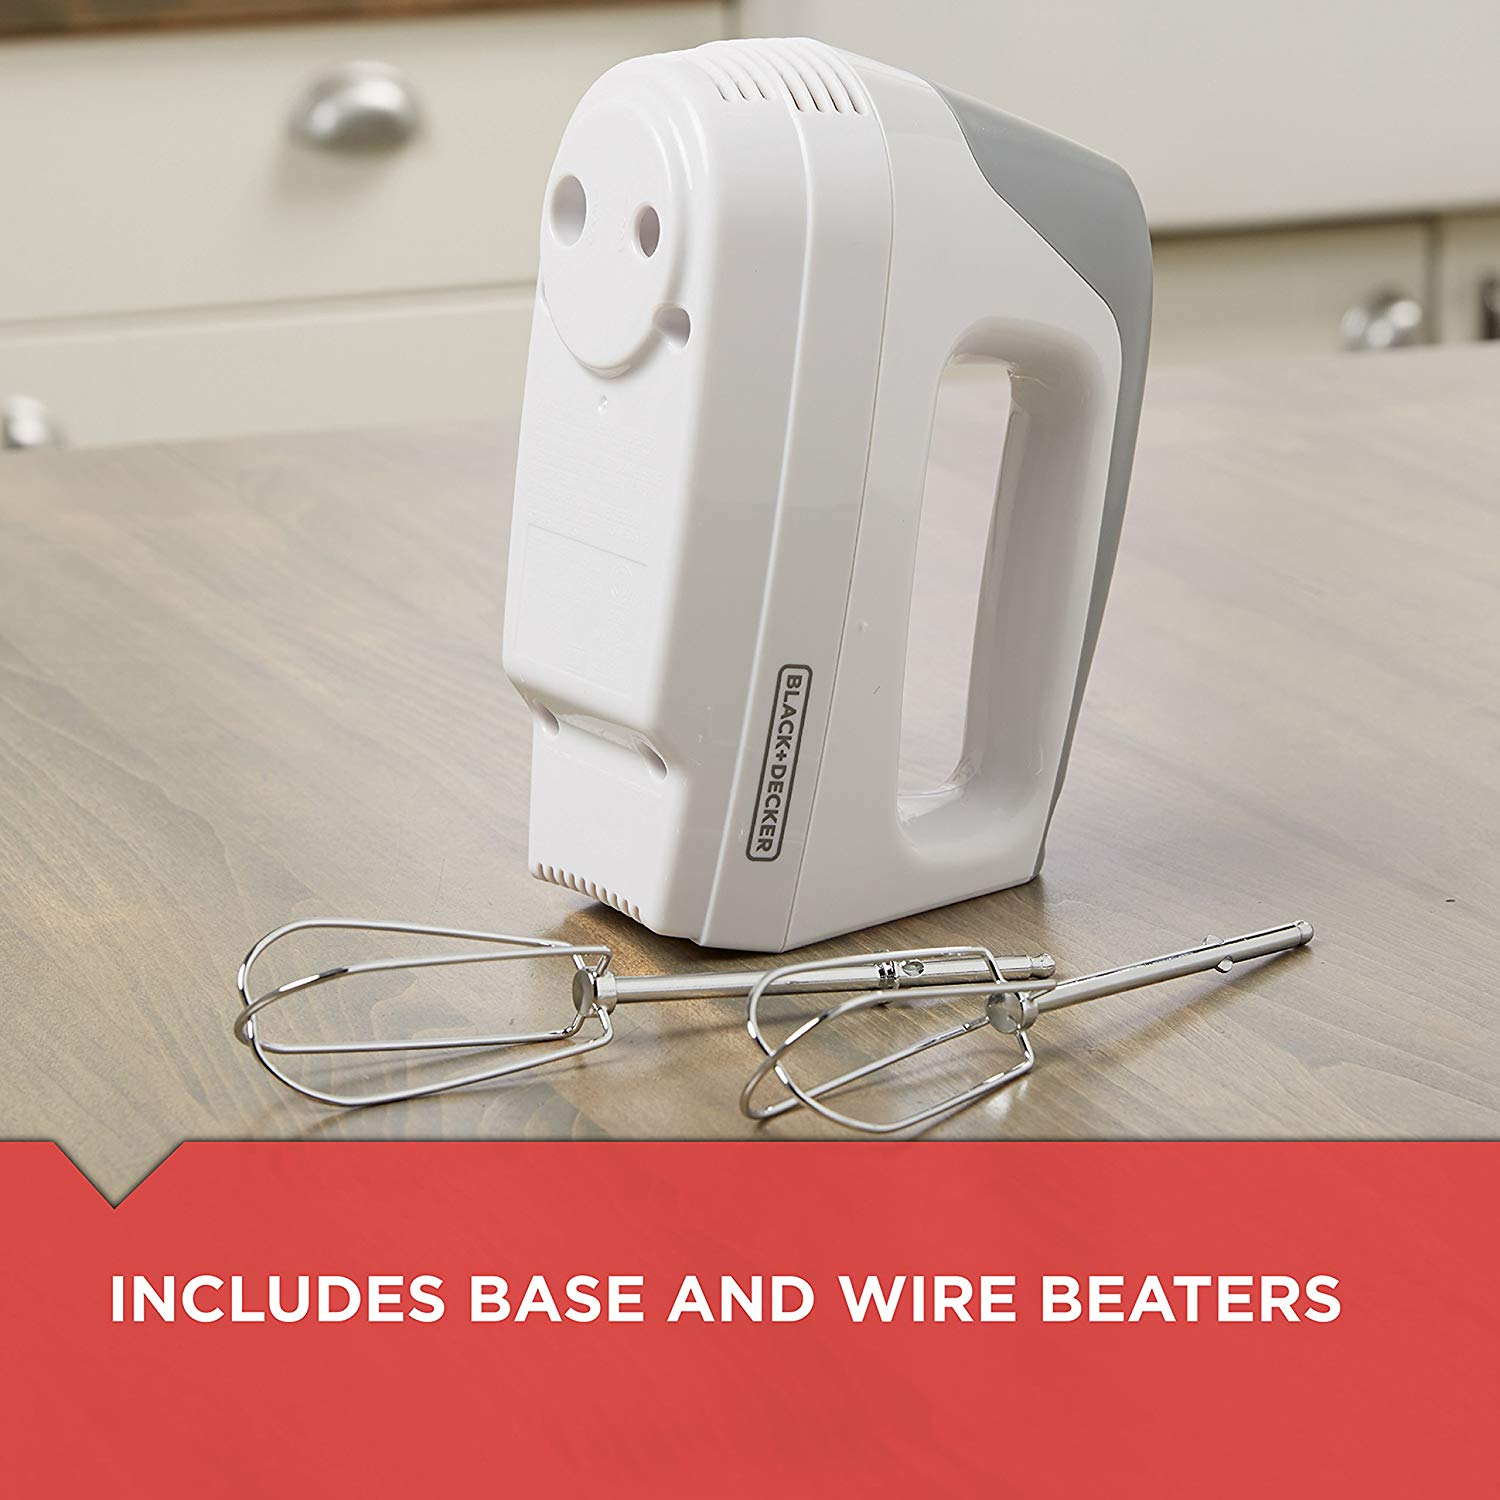 Black+decker lightweight 5-speed hand mixer